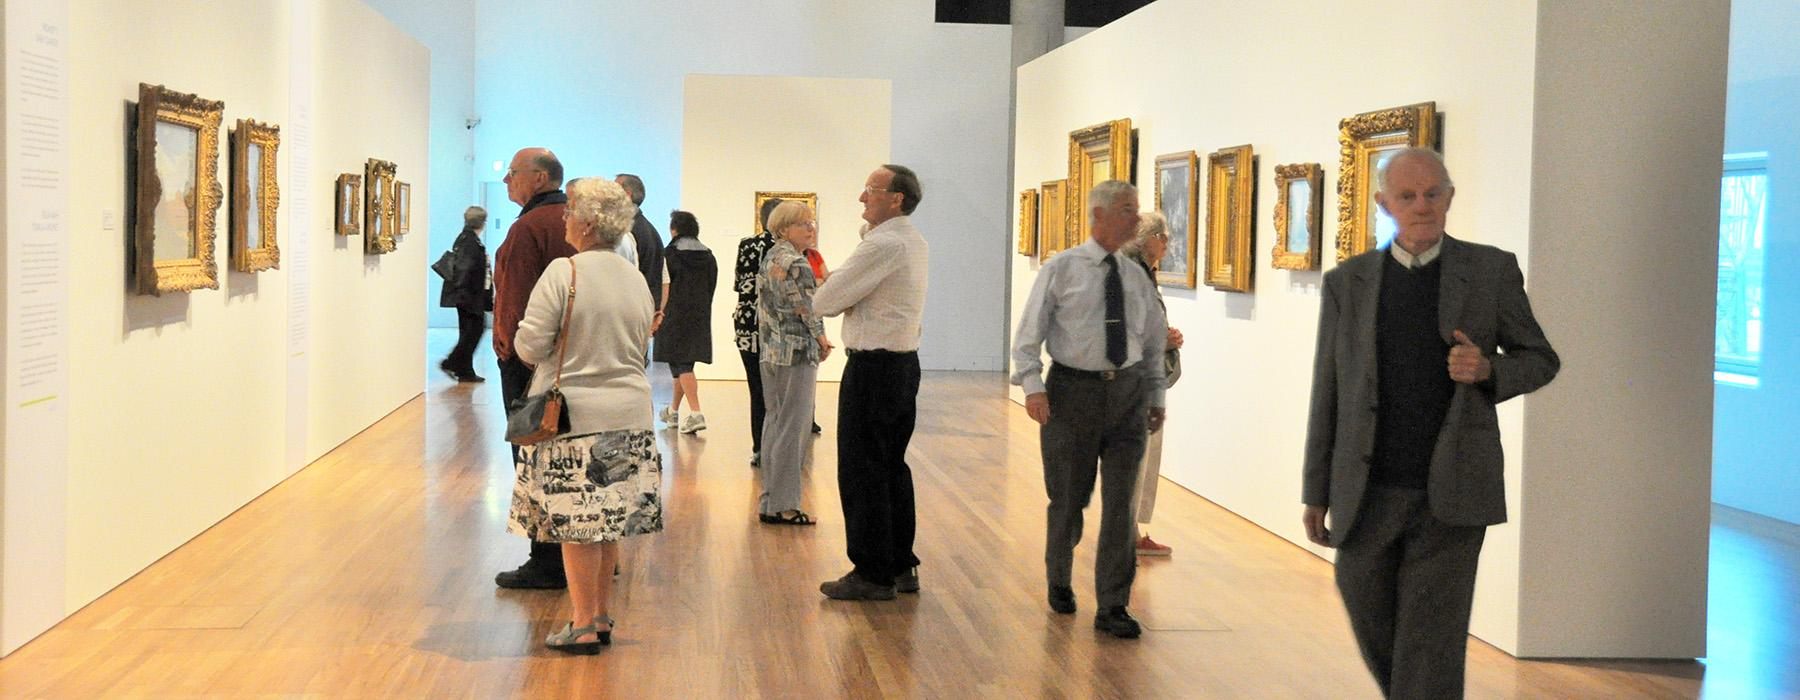 Seniors at an exhibition in Te Papa